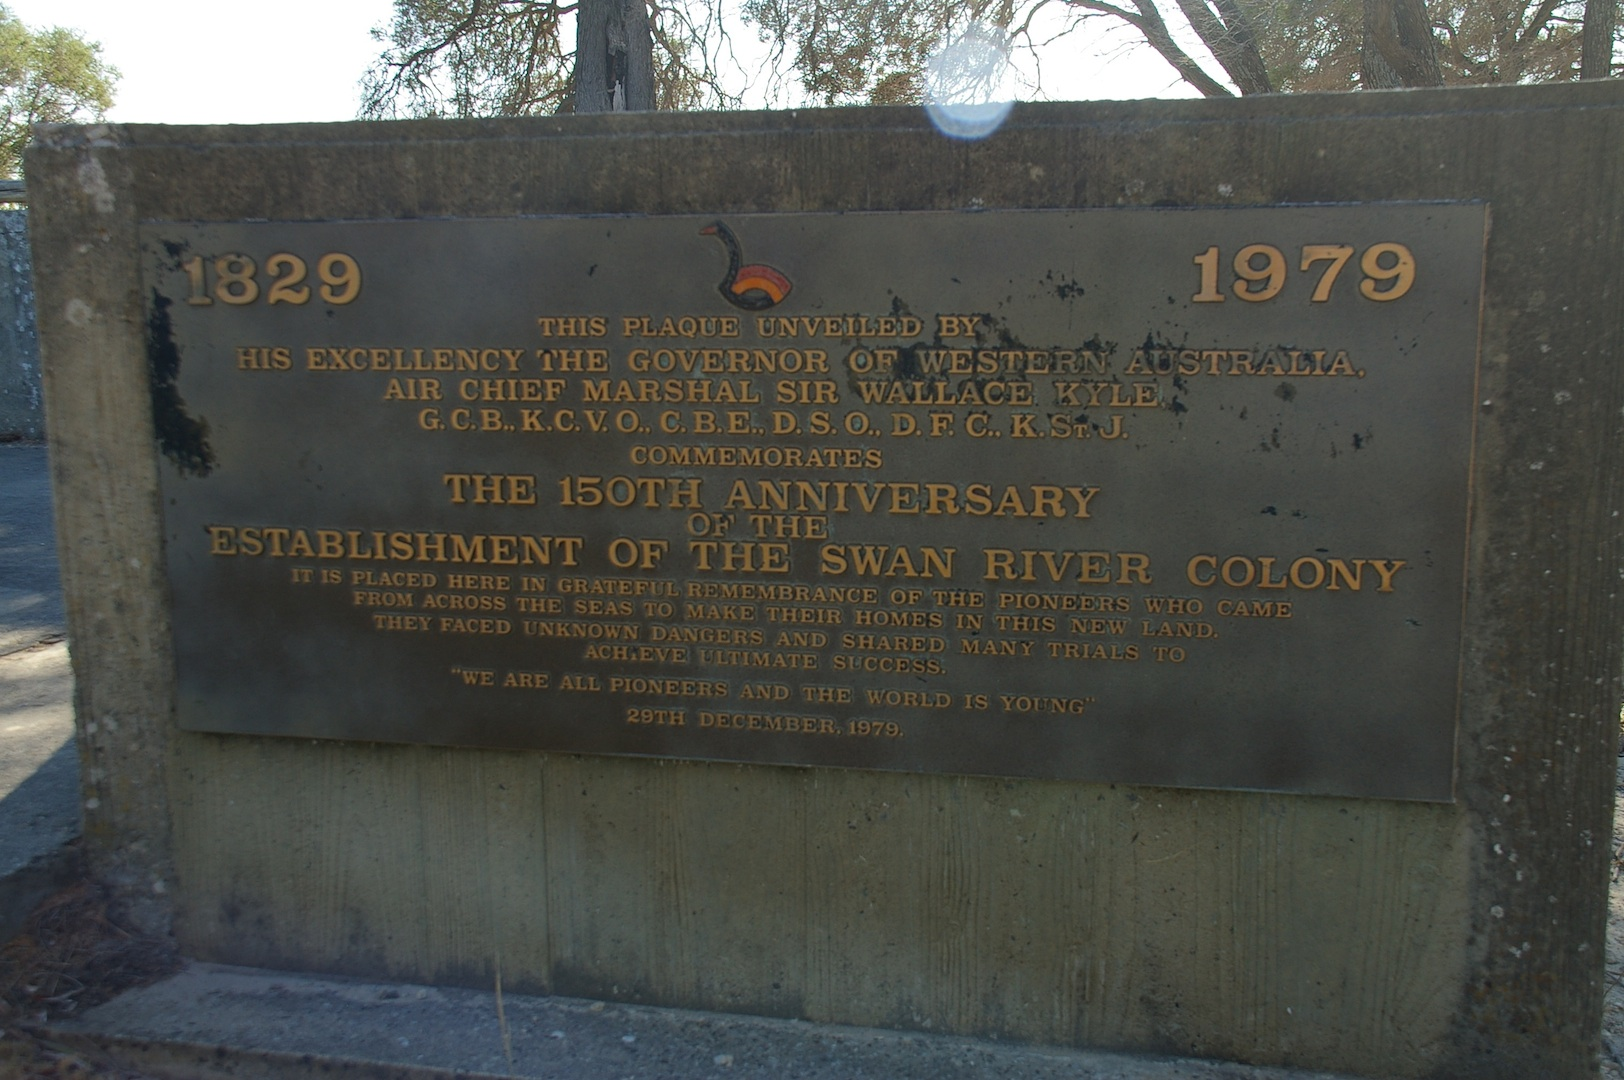 Monument on Garden Island, Perth, Western Australia, commemorating the 150th anniversary of the May 2, 1829, arrival of the first settlers of the Swan River Colony.